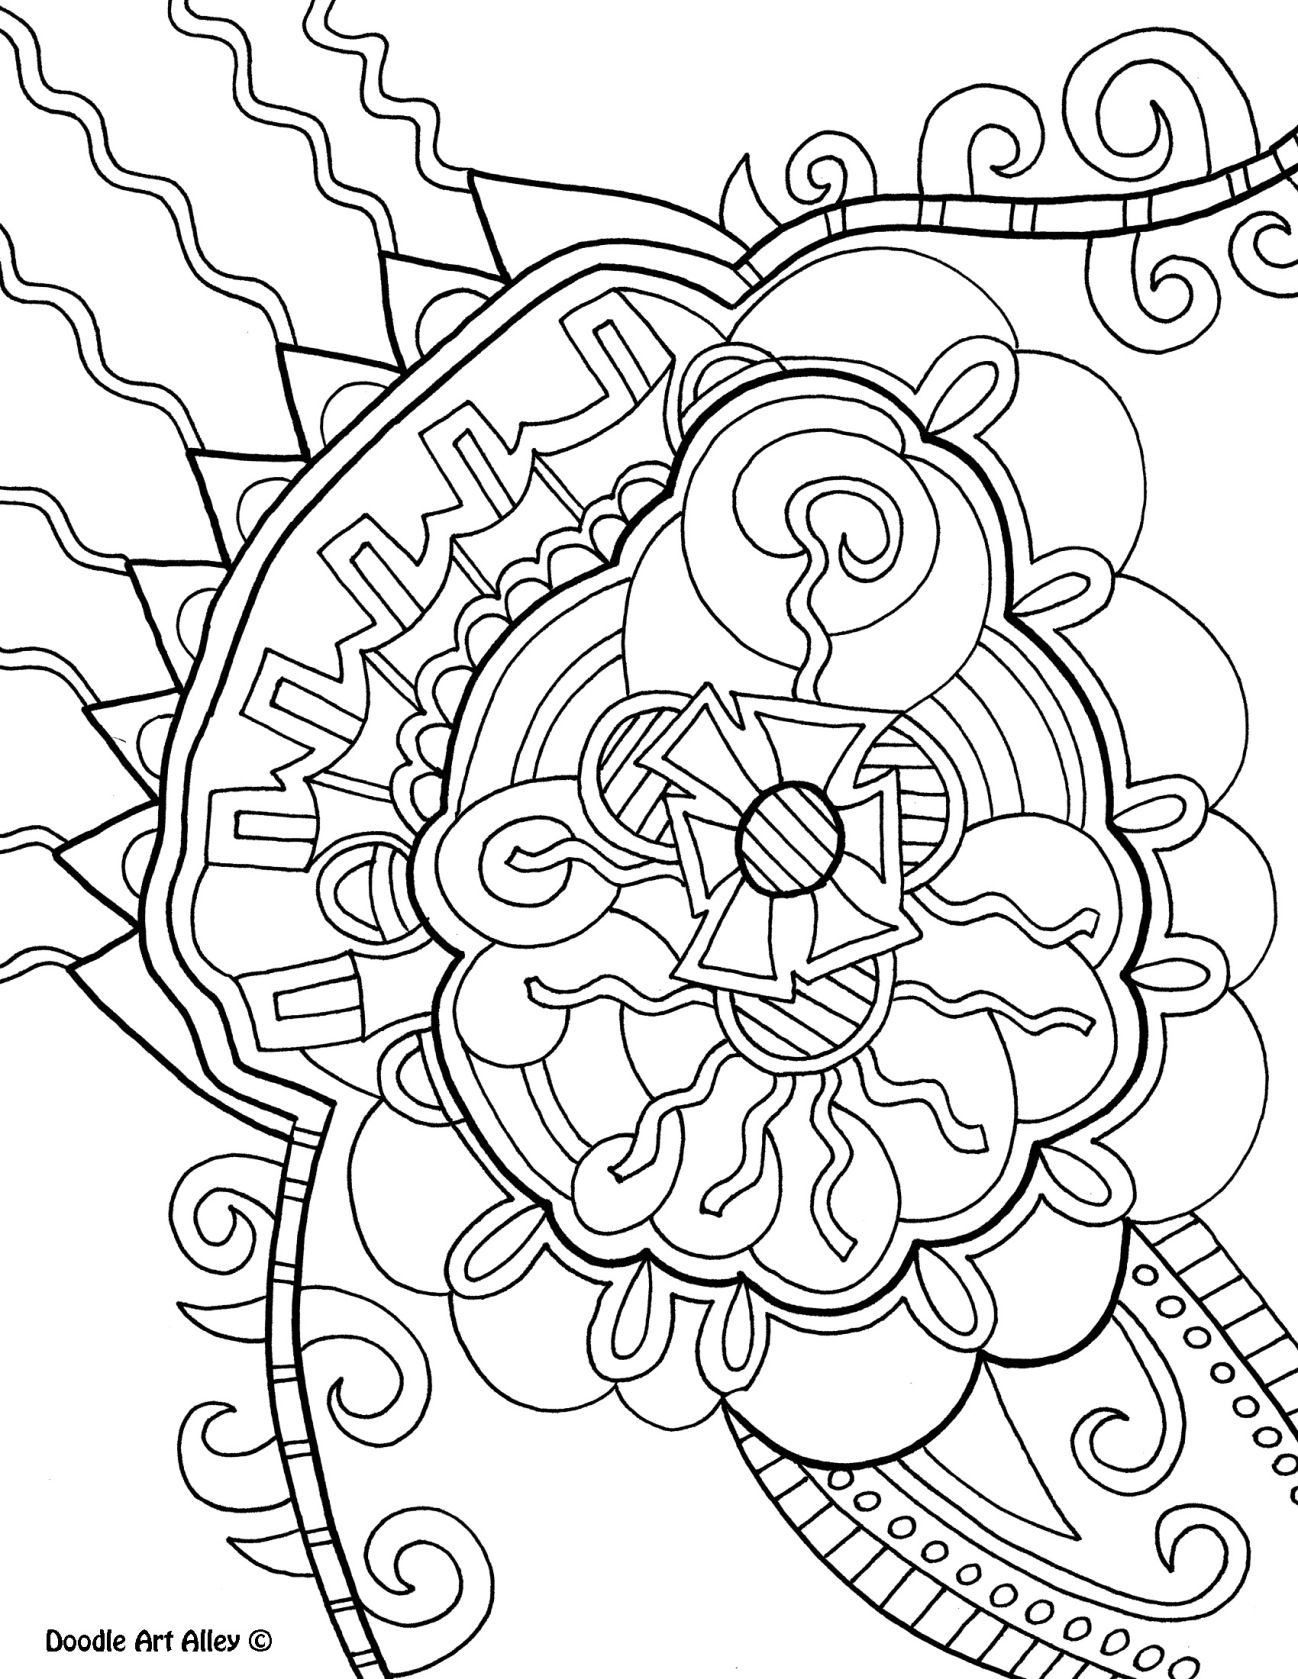 12+ Sharpie coloring pages printable ideas in 2021